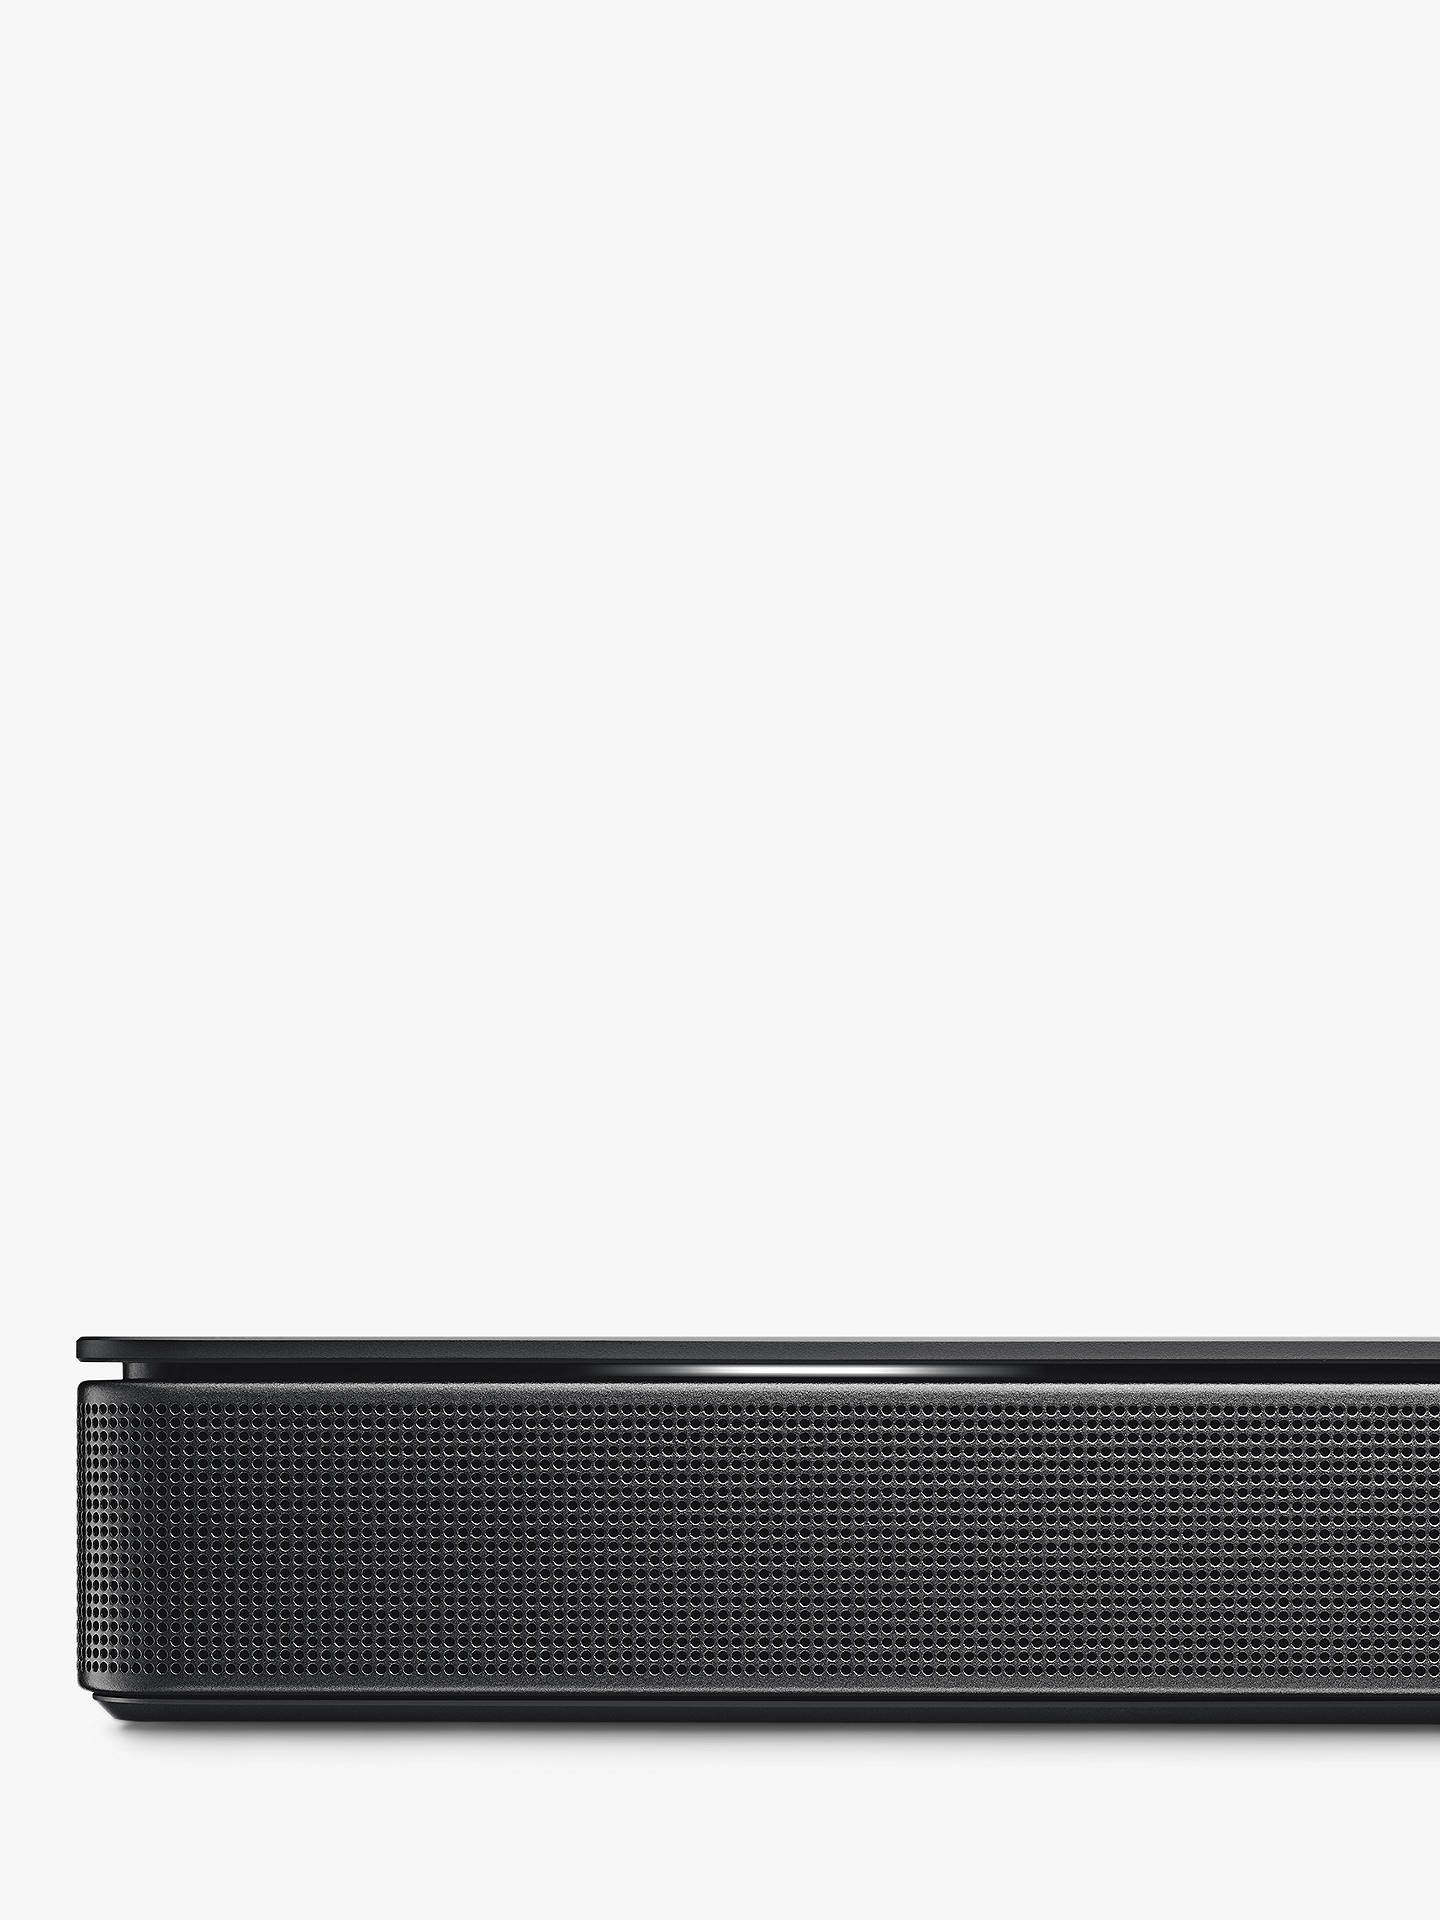 BuyBose® Sound Bar 500 with Wi-Fi, Bluetooth & Alexa Voice Recognition and Control, Black Online at johnlewis.com